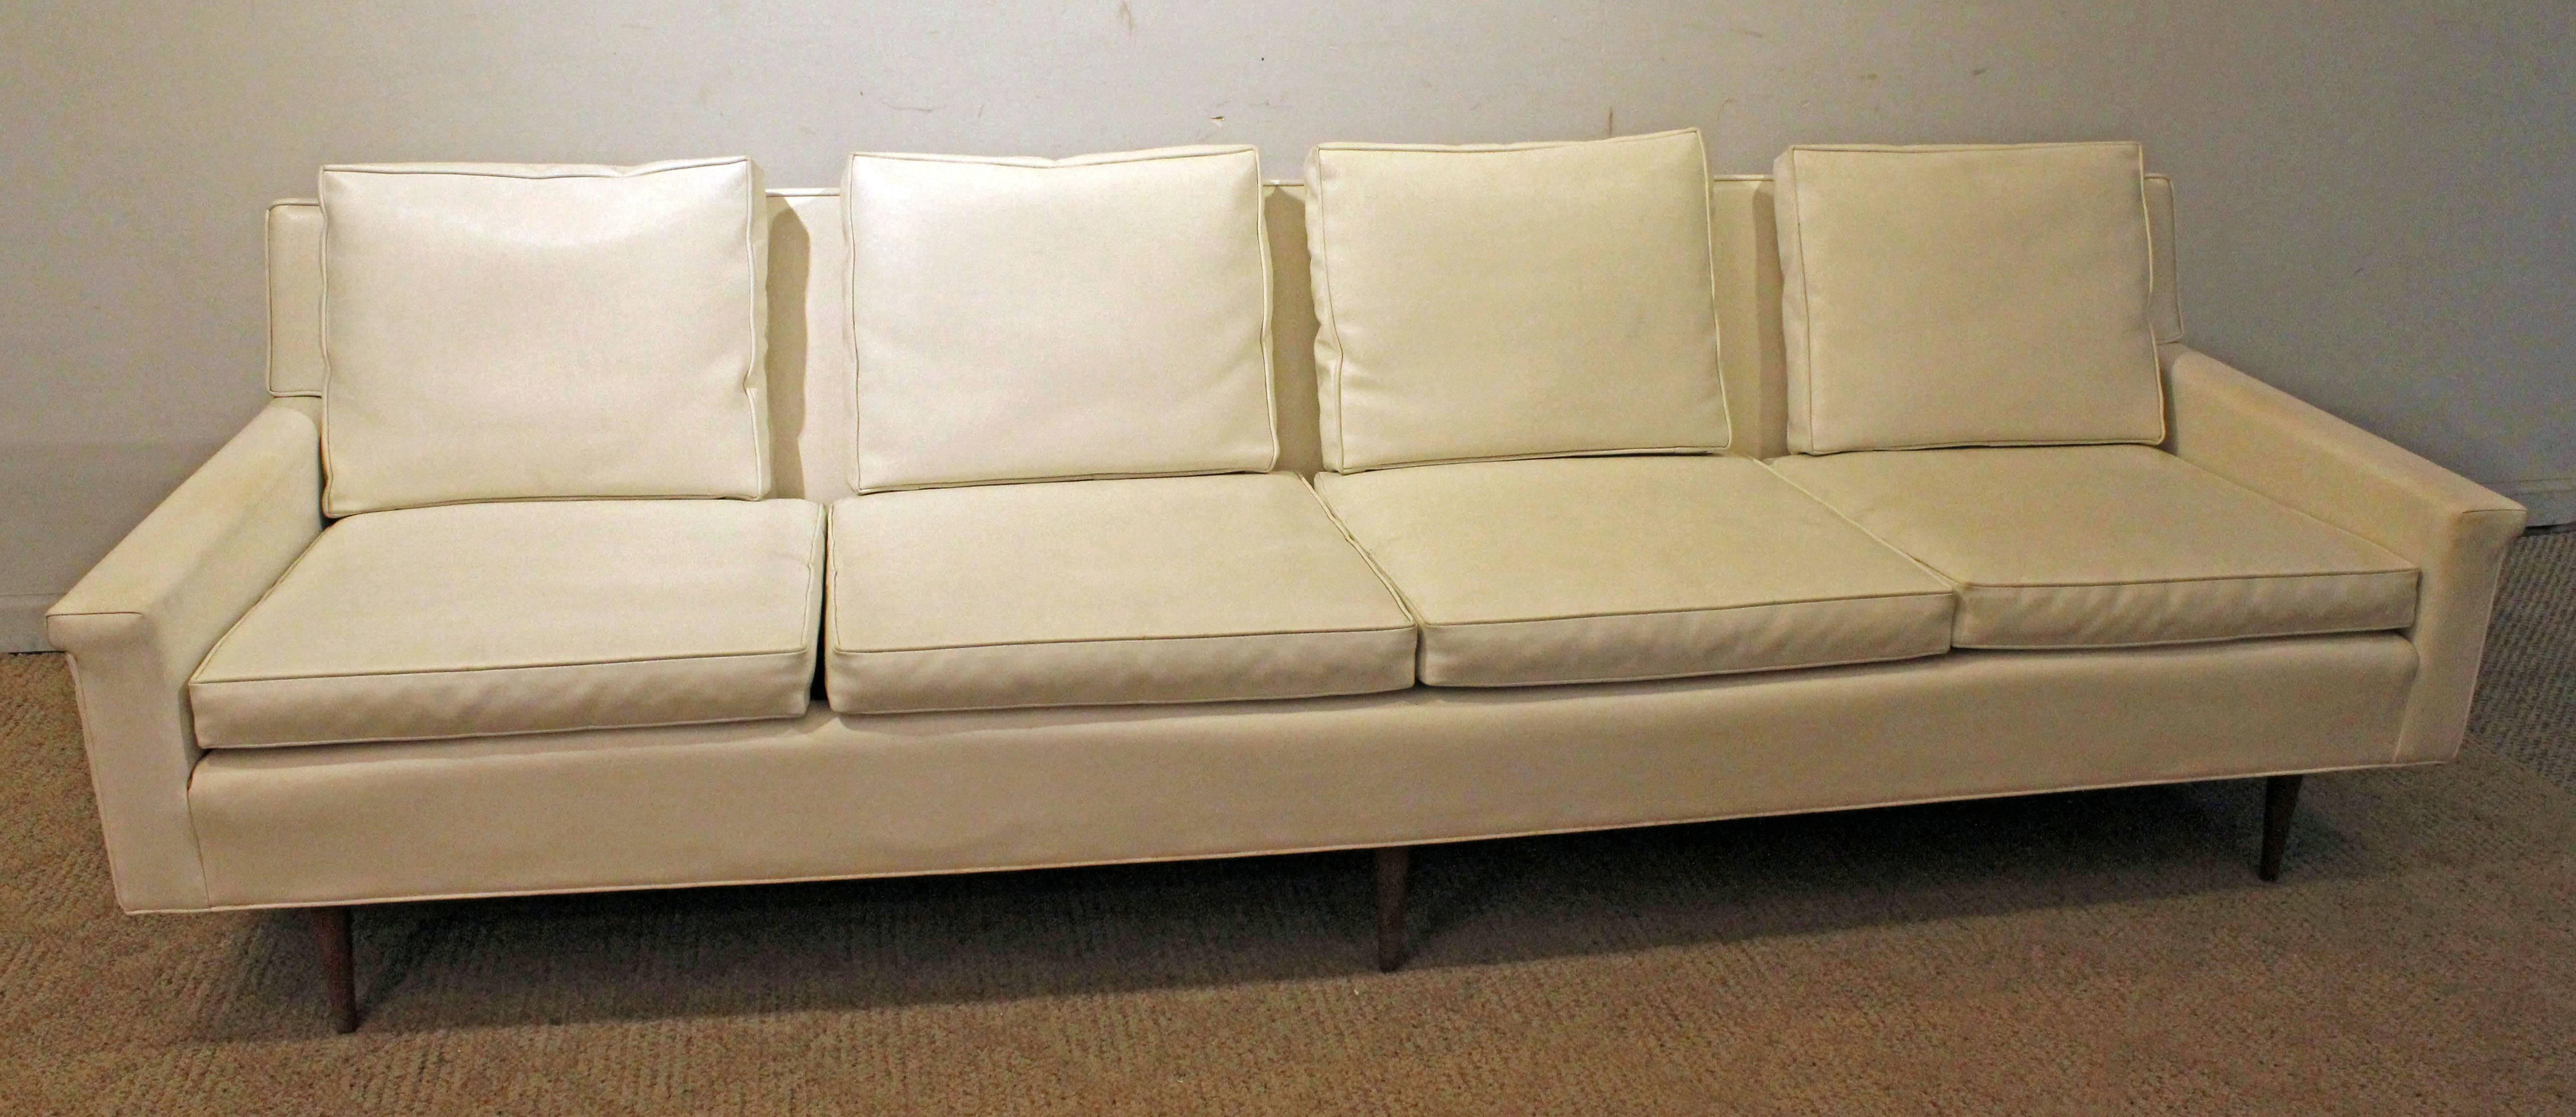 Mid Century Modern Milo Baughman For Thayer Coggin Vinyl Sofa For Sale At  1stdibs